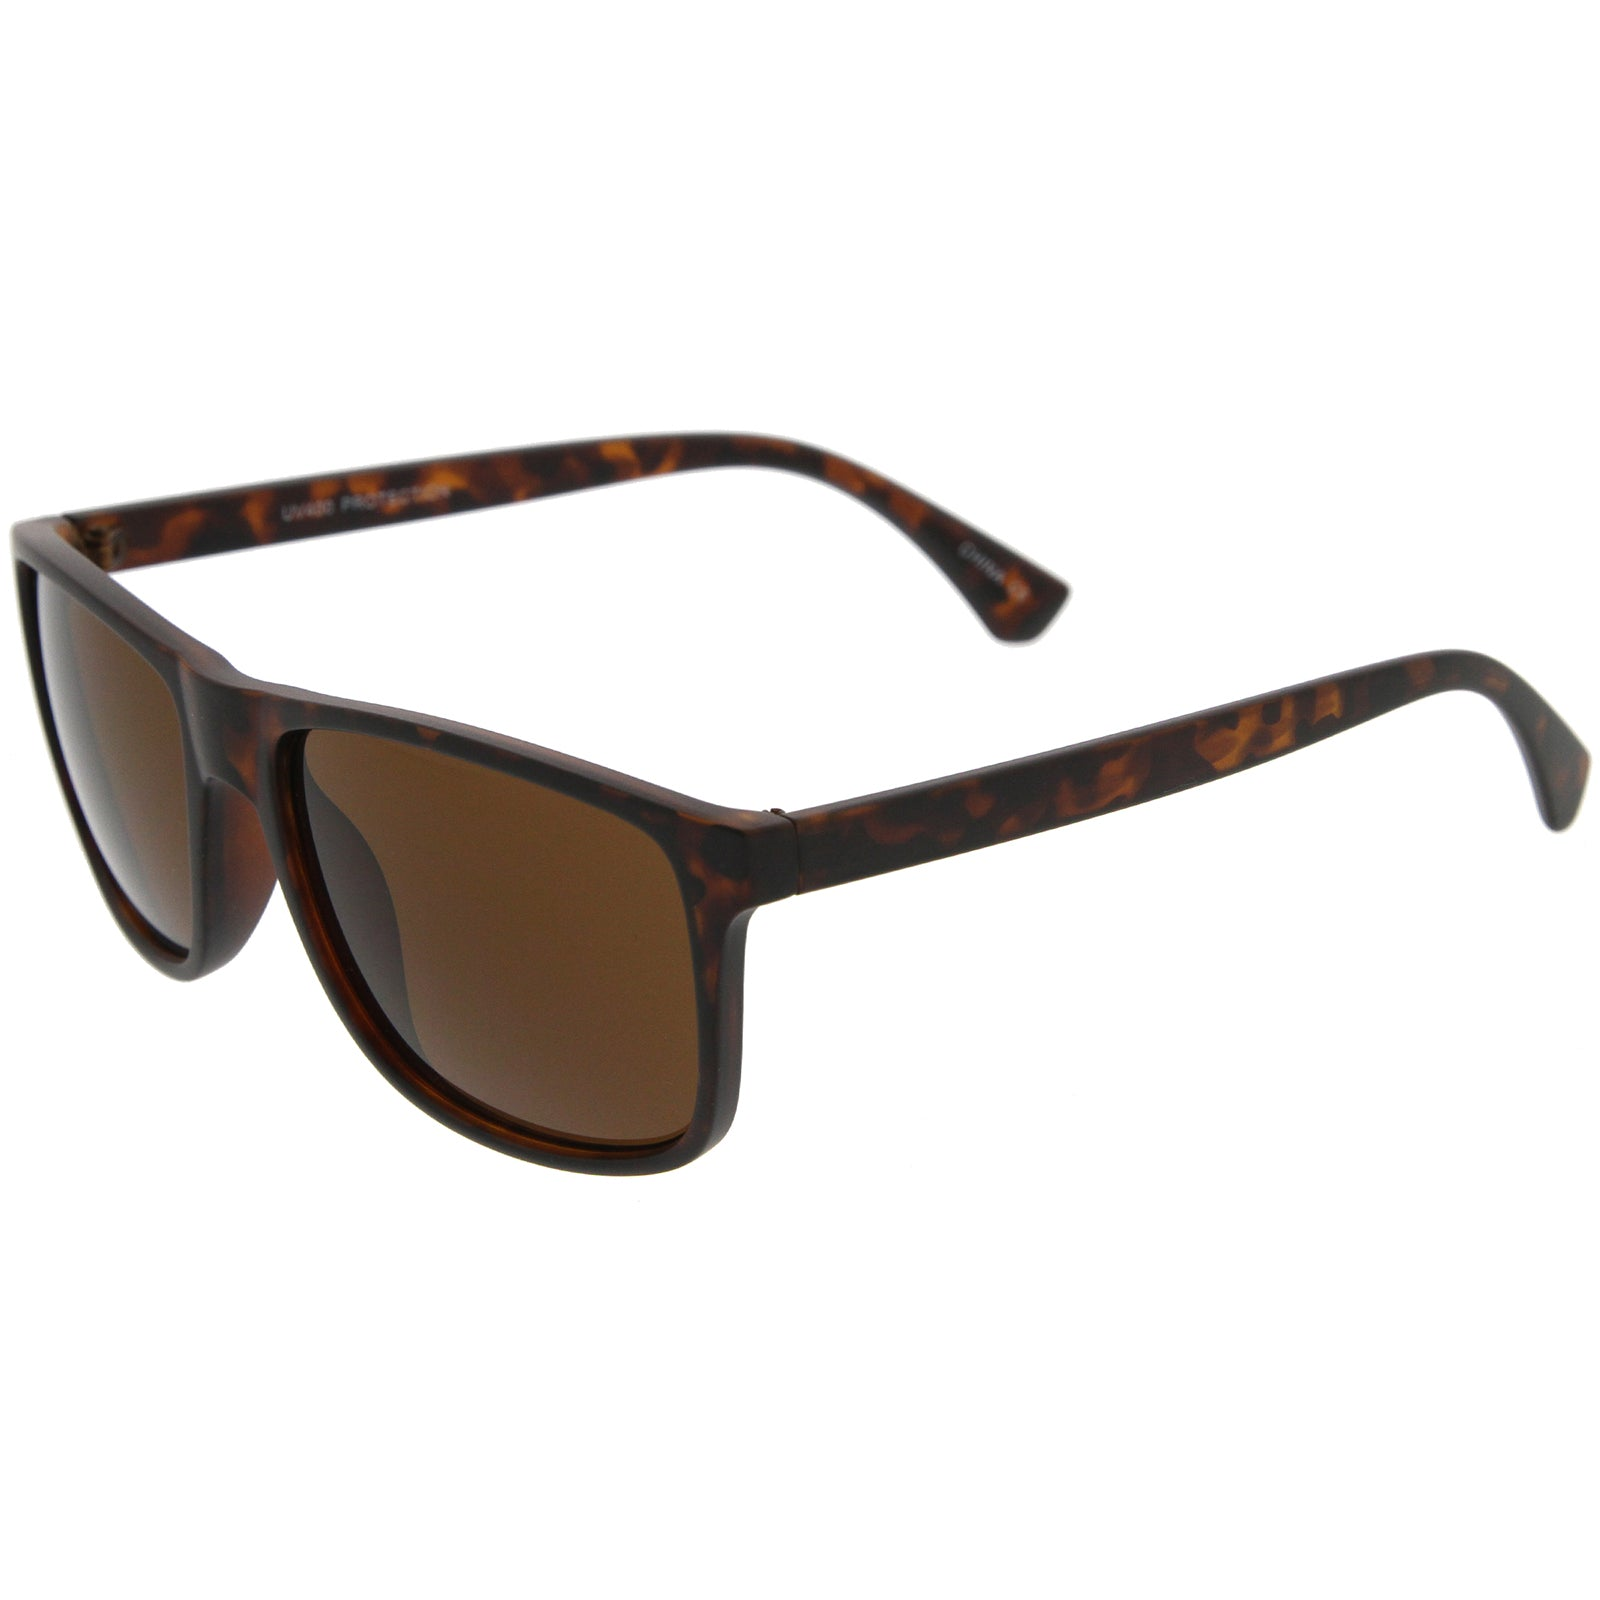 Modern Casual Lifestyle Flat Top Rectangle Lens Horn Rimmed Sunglasses 56mm - sunglass.la - 3